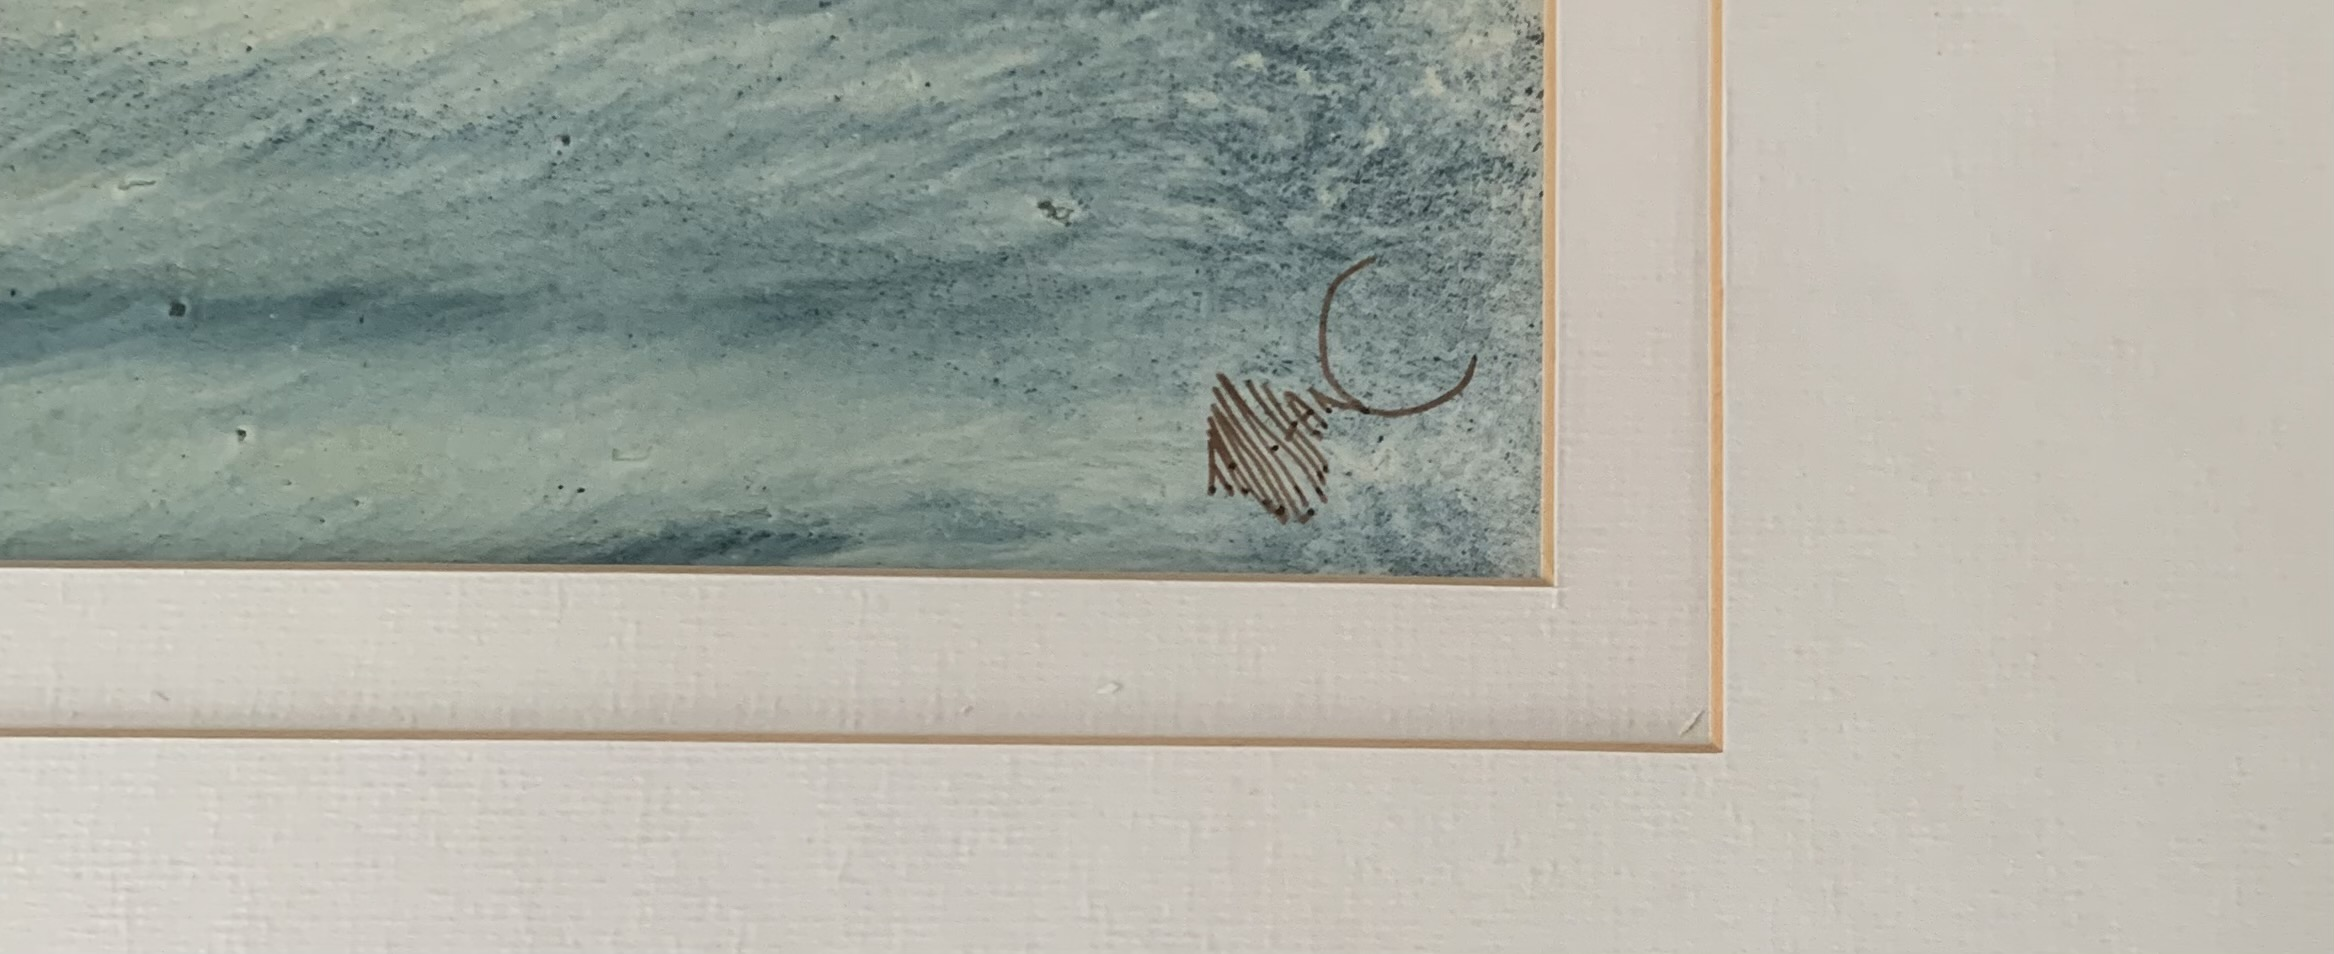 """Pair of watercolours """"Donegal Coast II"""" and """"Donegal Coast III"""" by Tony Holahan. Images 12"""" x 5. - Image 5 of 6"""